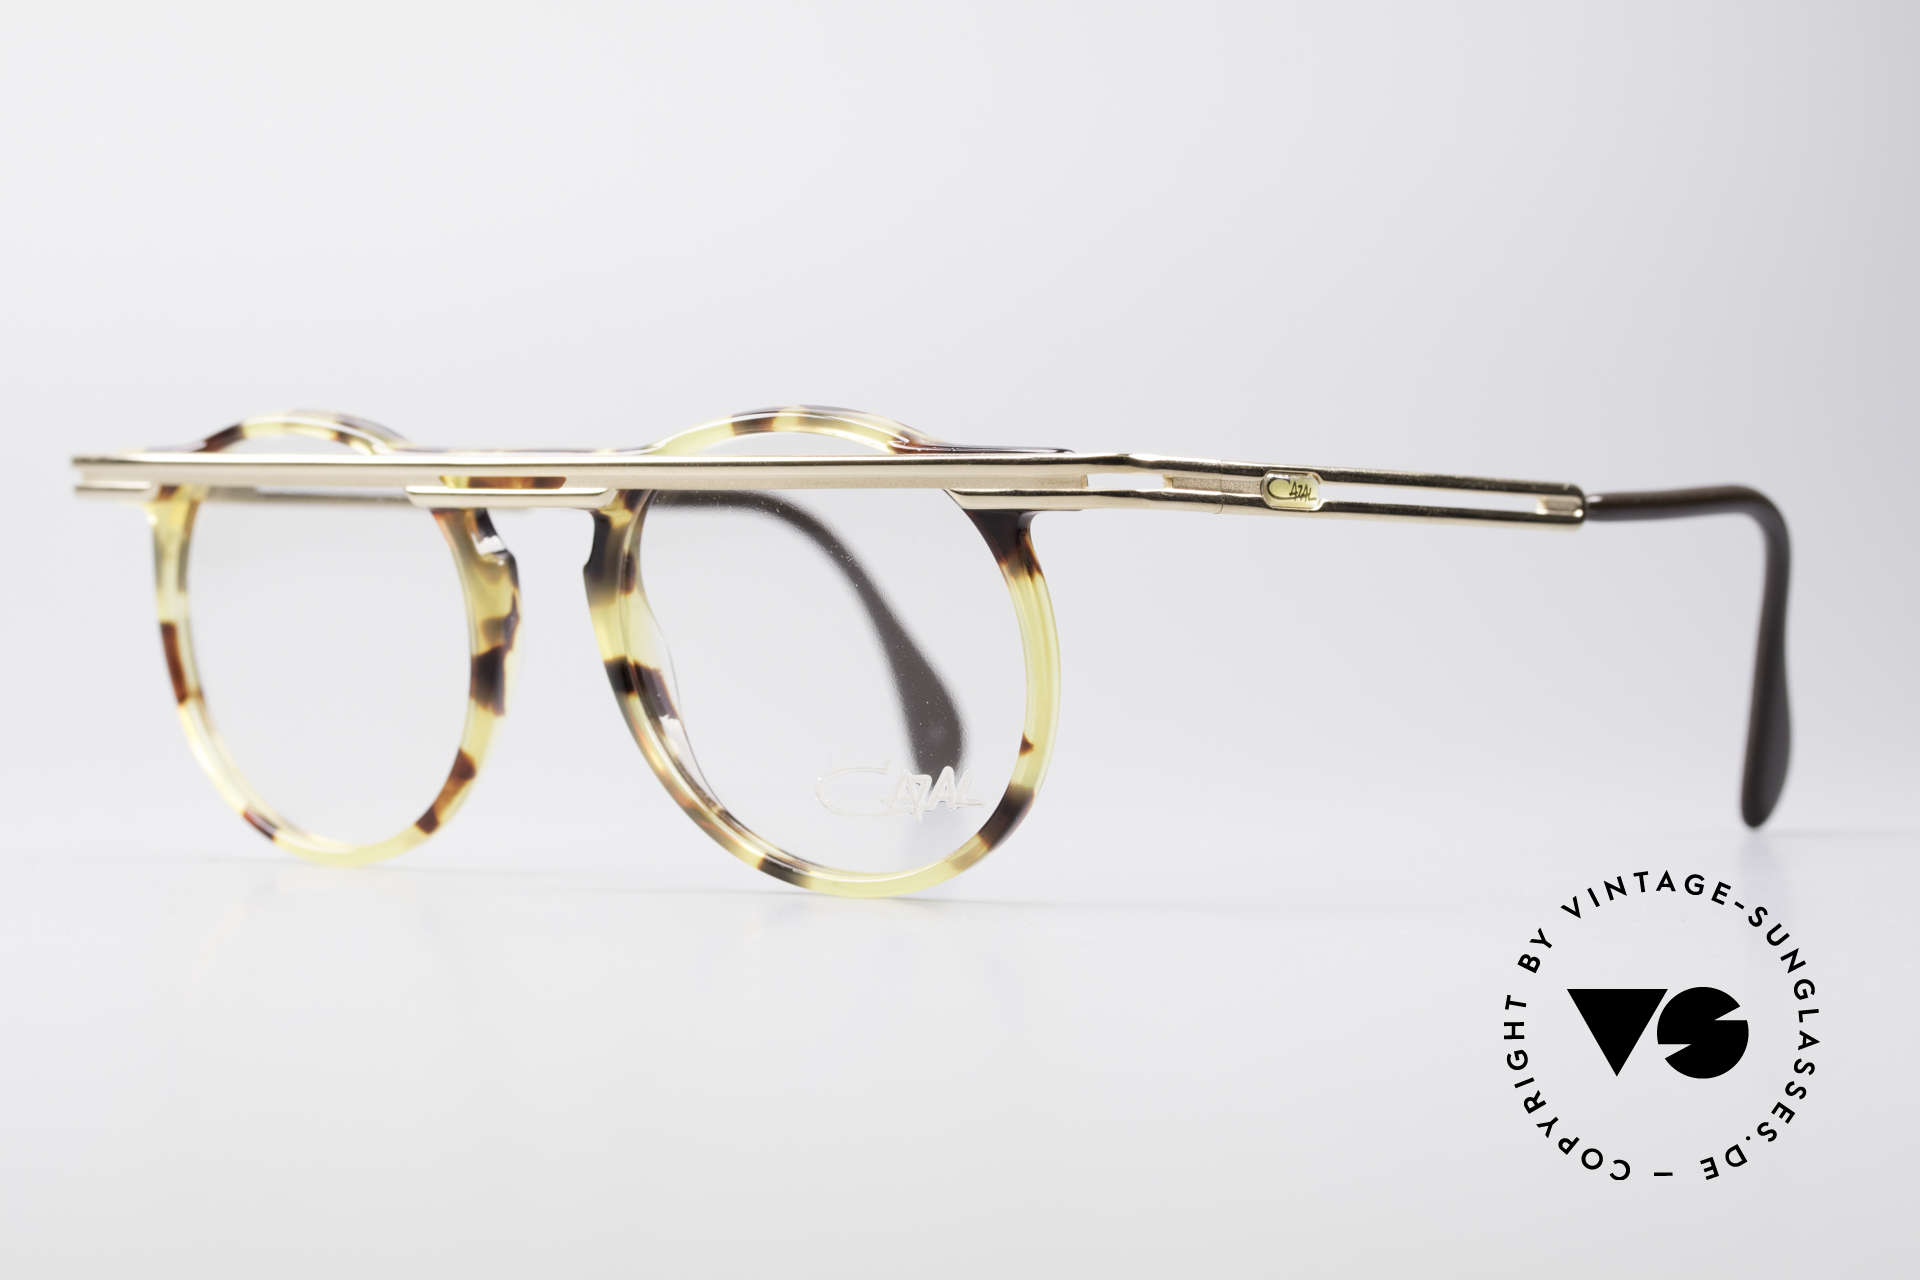 Cazal 648 True 90's Cari Zalloni Glasses, extroverted frame construction with unique coloring, Made for Men and Women